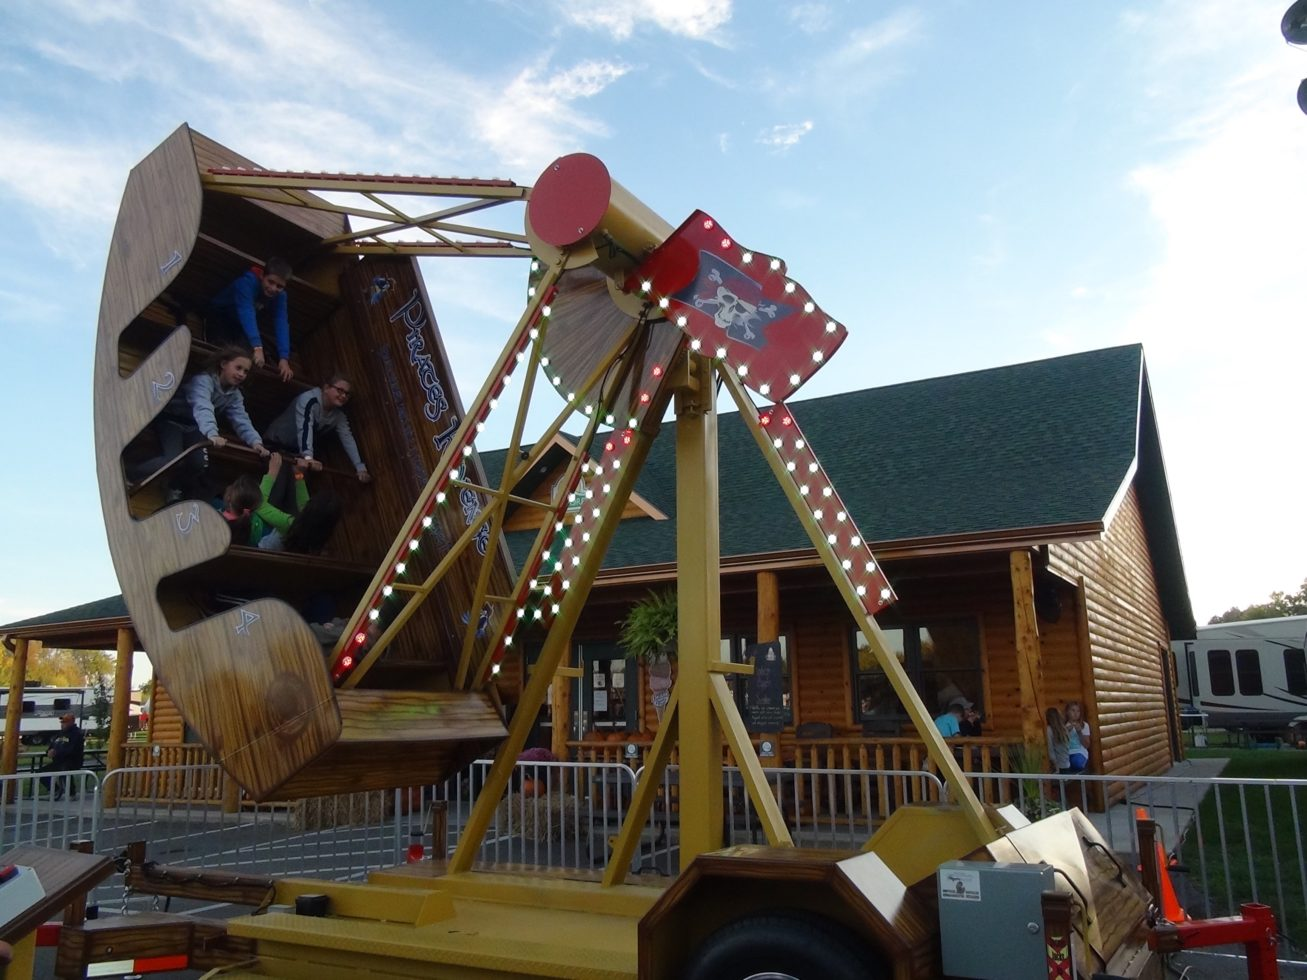 Kids riding on pirates revenge ride